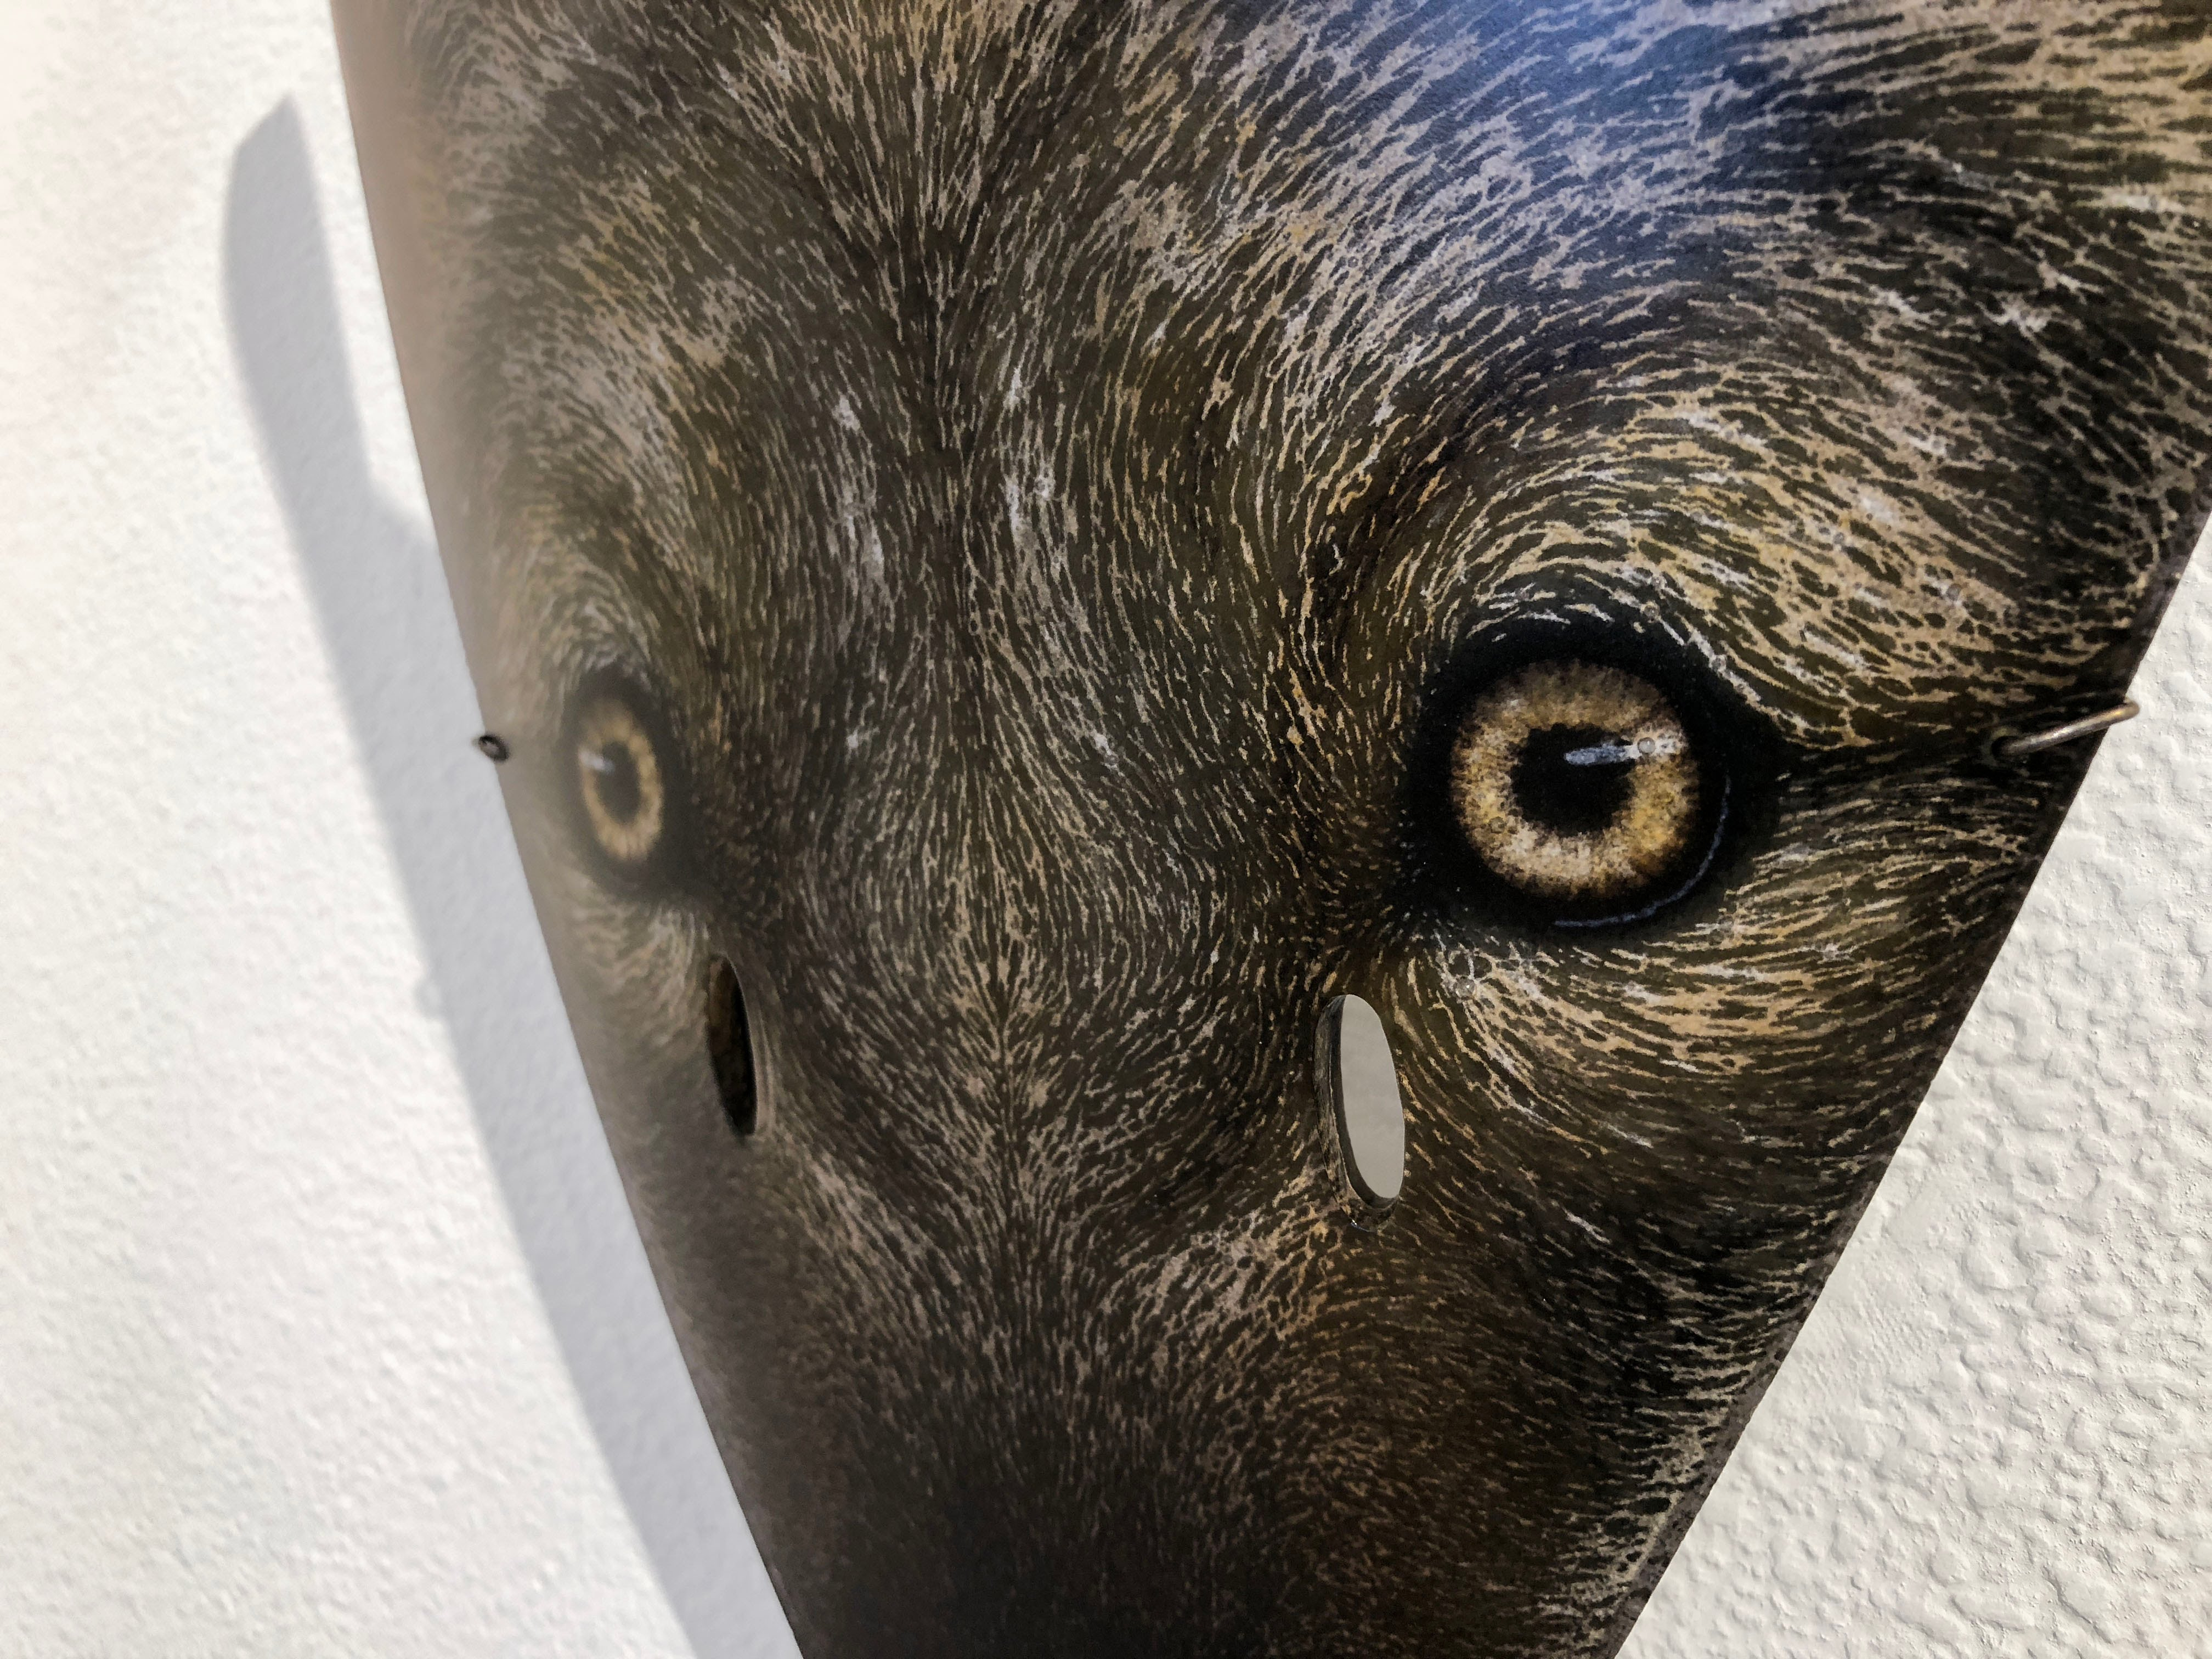 Fused glass coyote mask by Suzanne Head